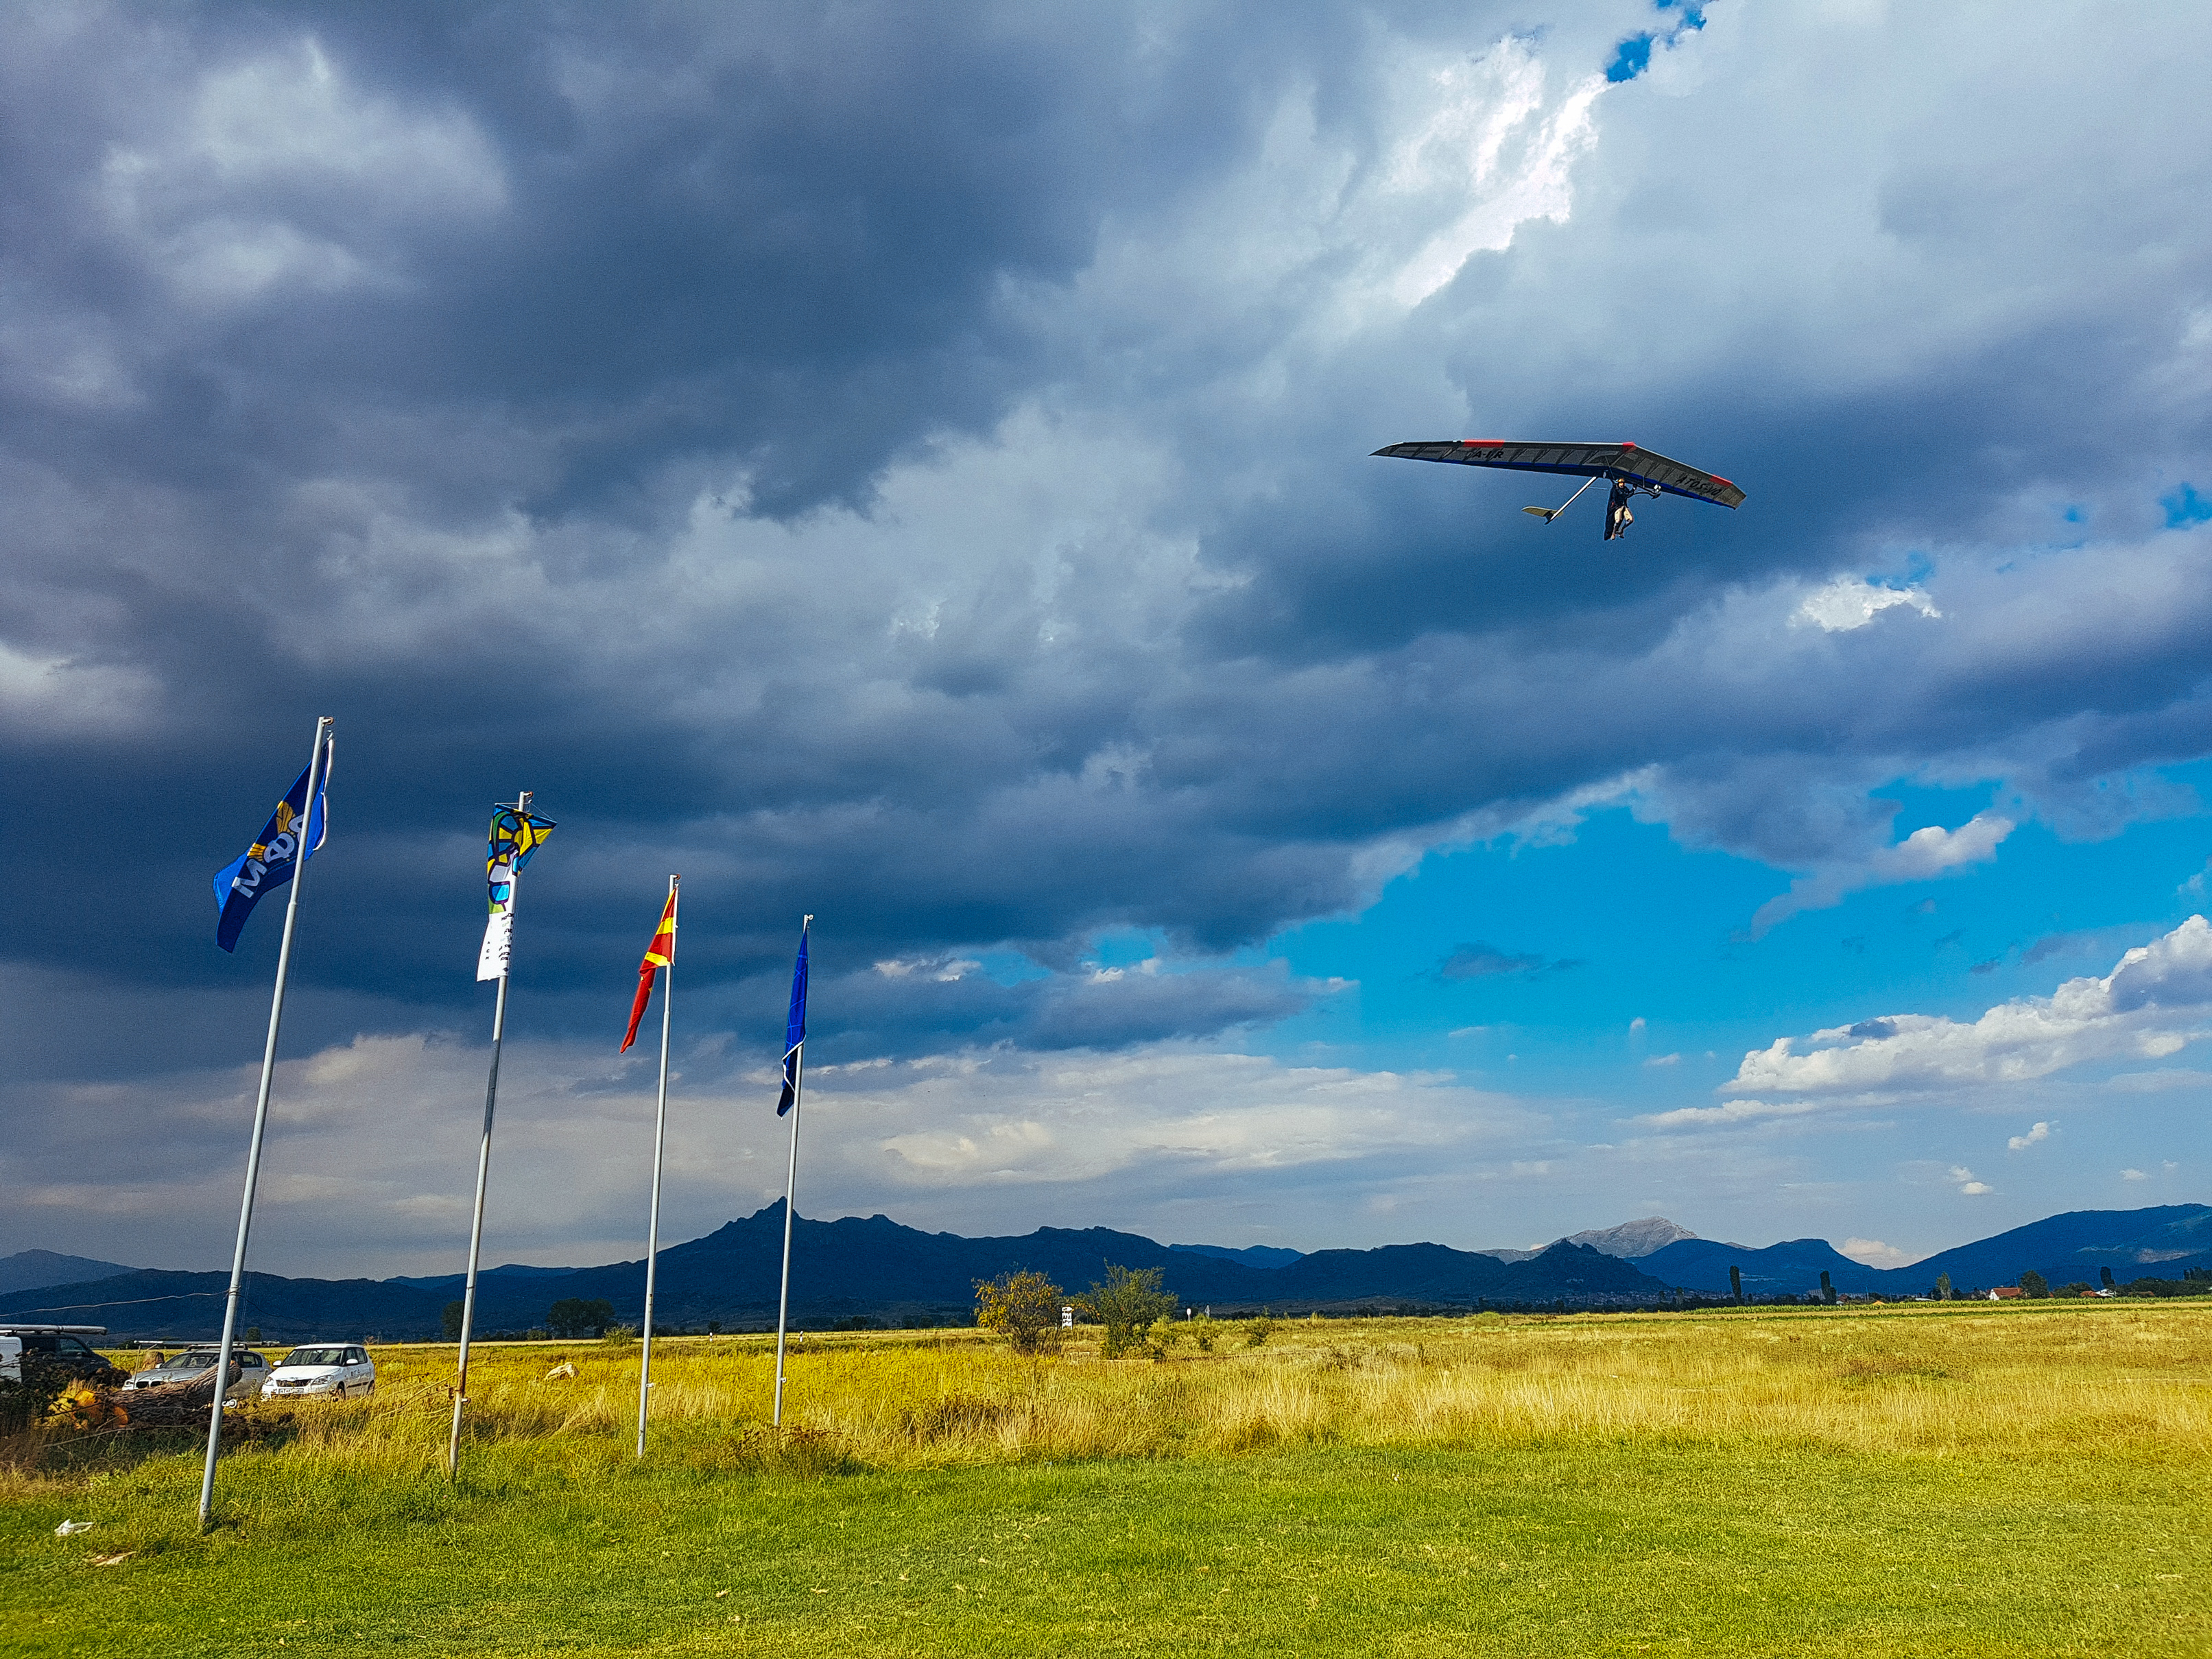 Hang Glider over Krusevo 2018